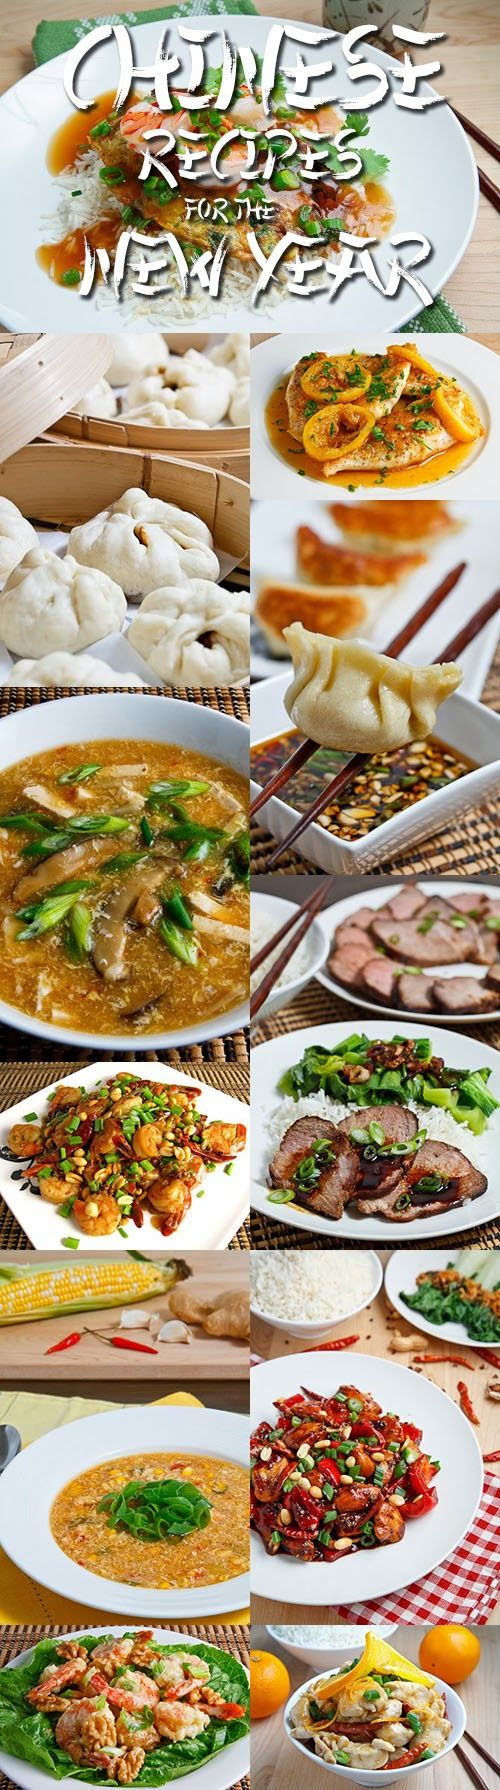 17 Chinese Recipes for the New Year.....MY FAVORITTE THING IS IN THIS :DDDDDD